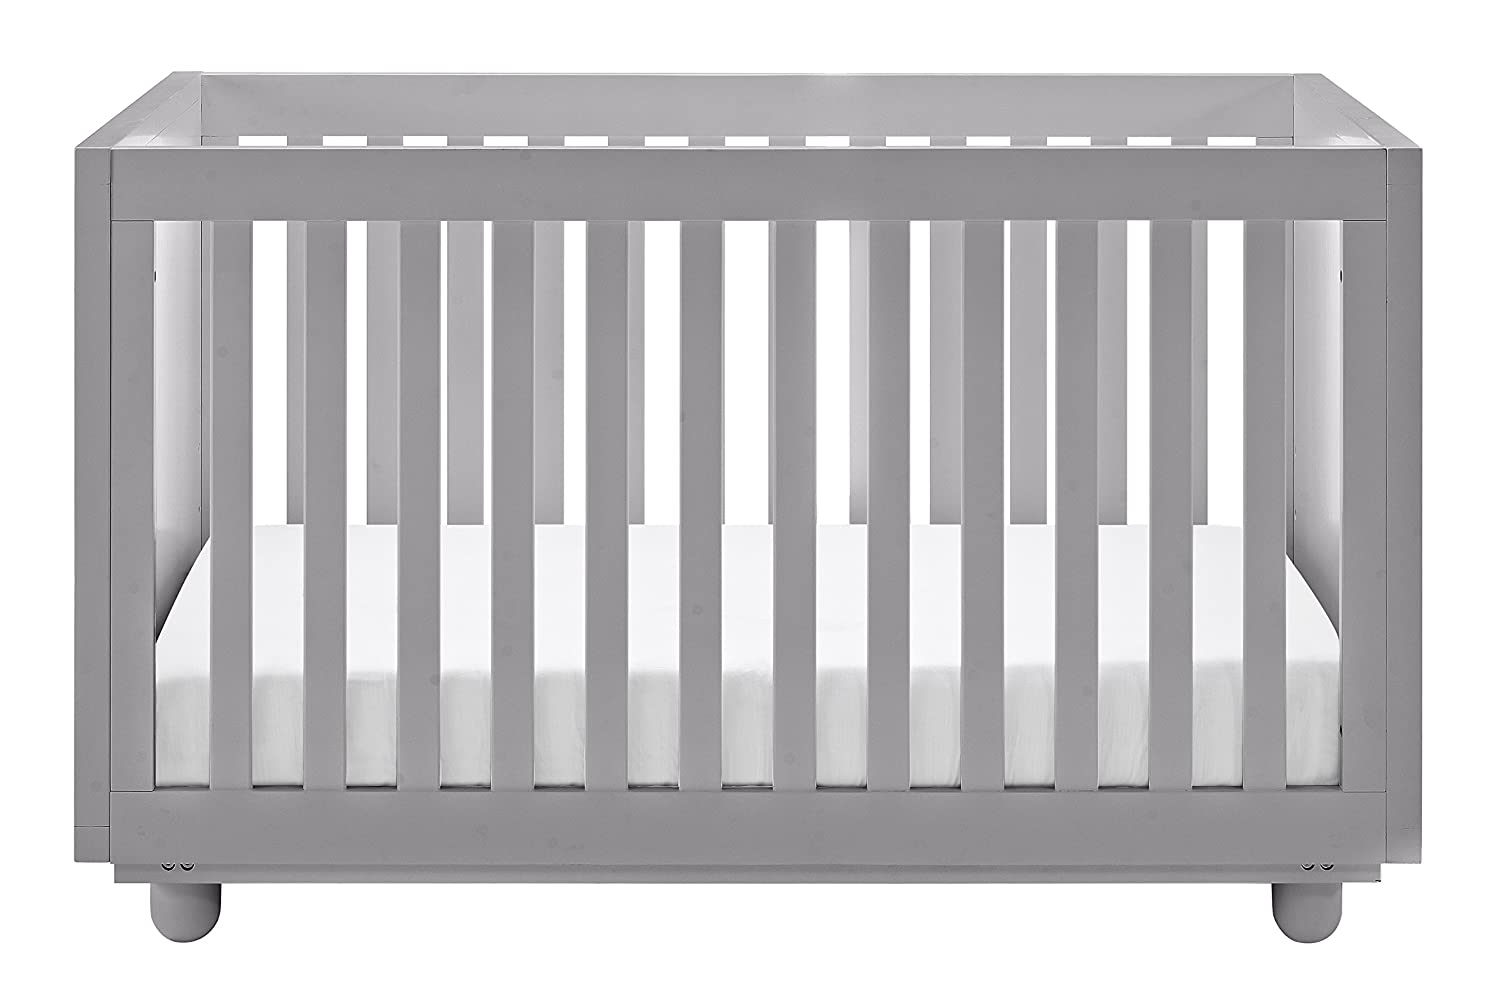 Storkcraft Violet 3-in-1 Convertible Crib, White, Easily Converts to Toddler Bed Day Bed or Full Bed, Three Position Adjustable Height Mattress, Some Assembly Required 04610-101